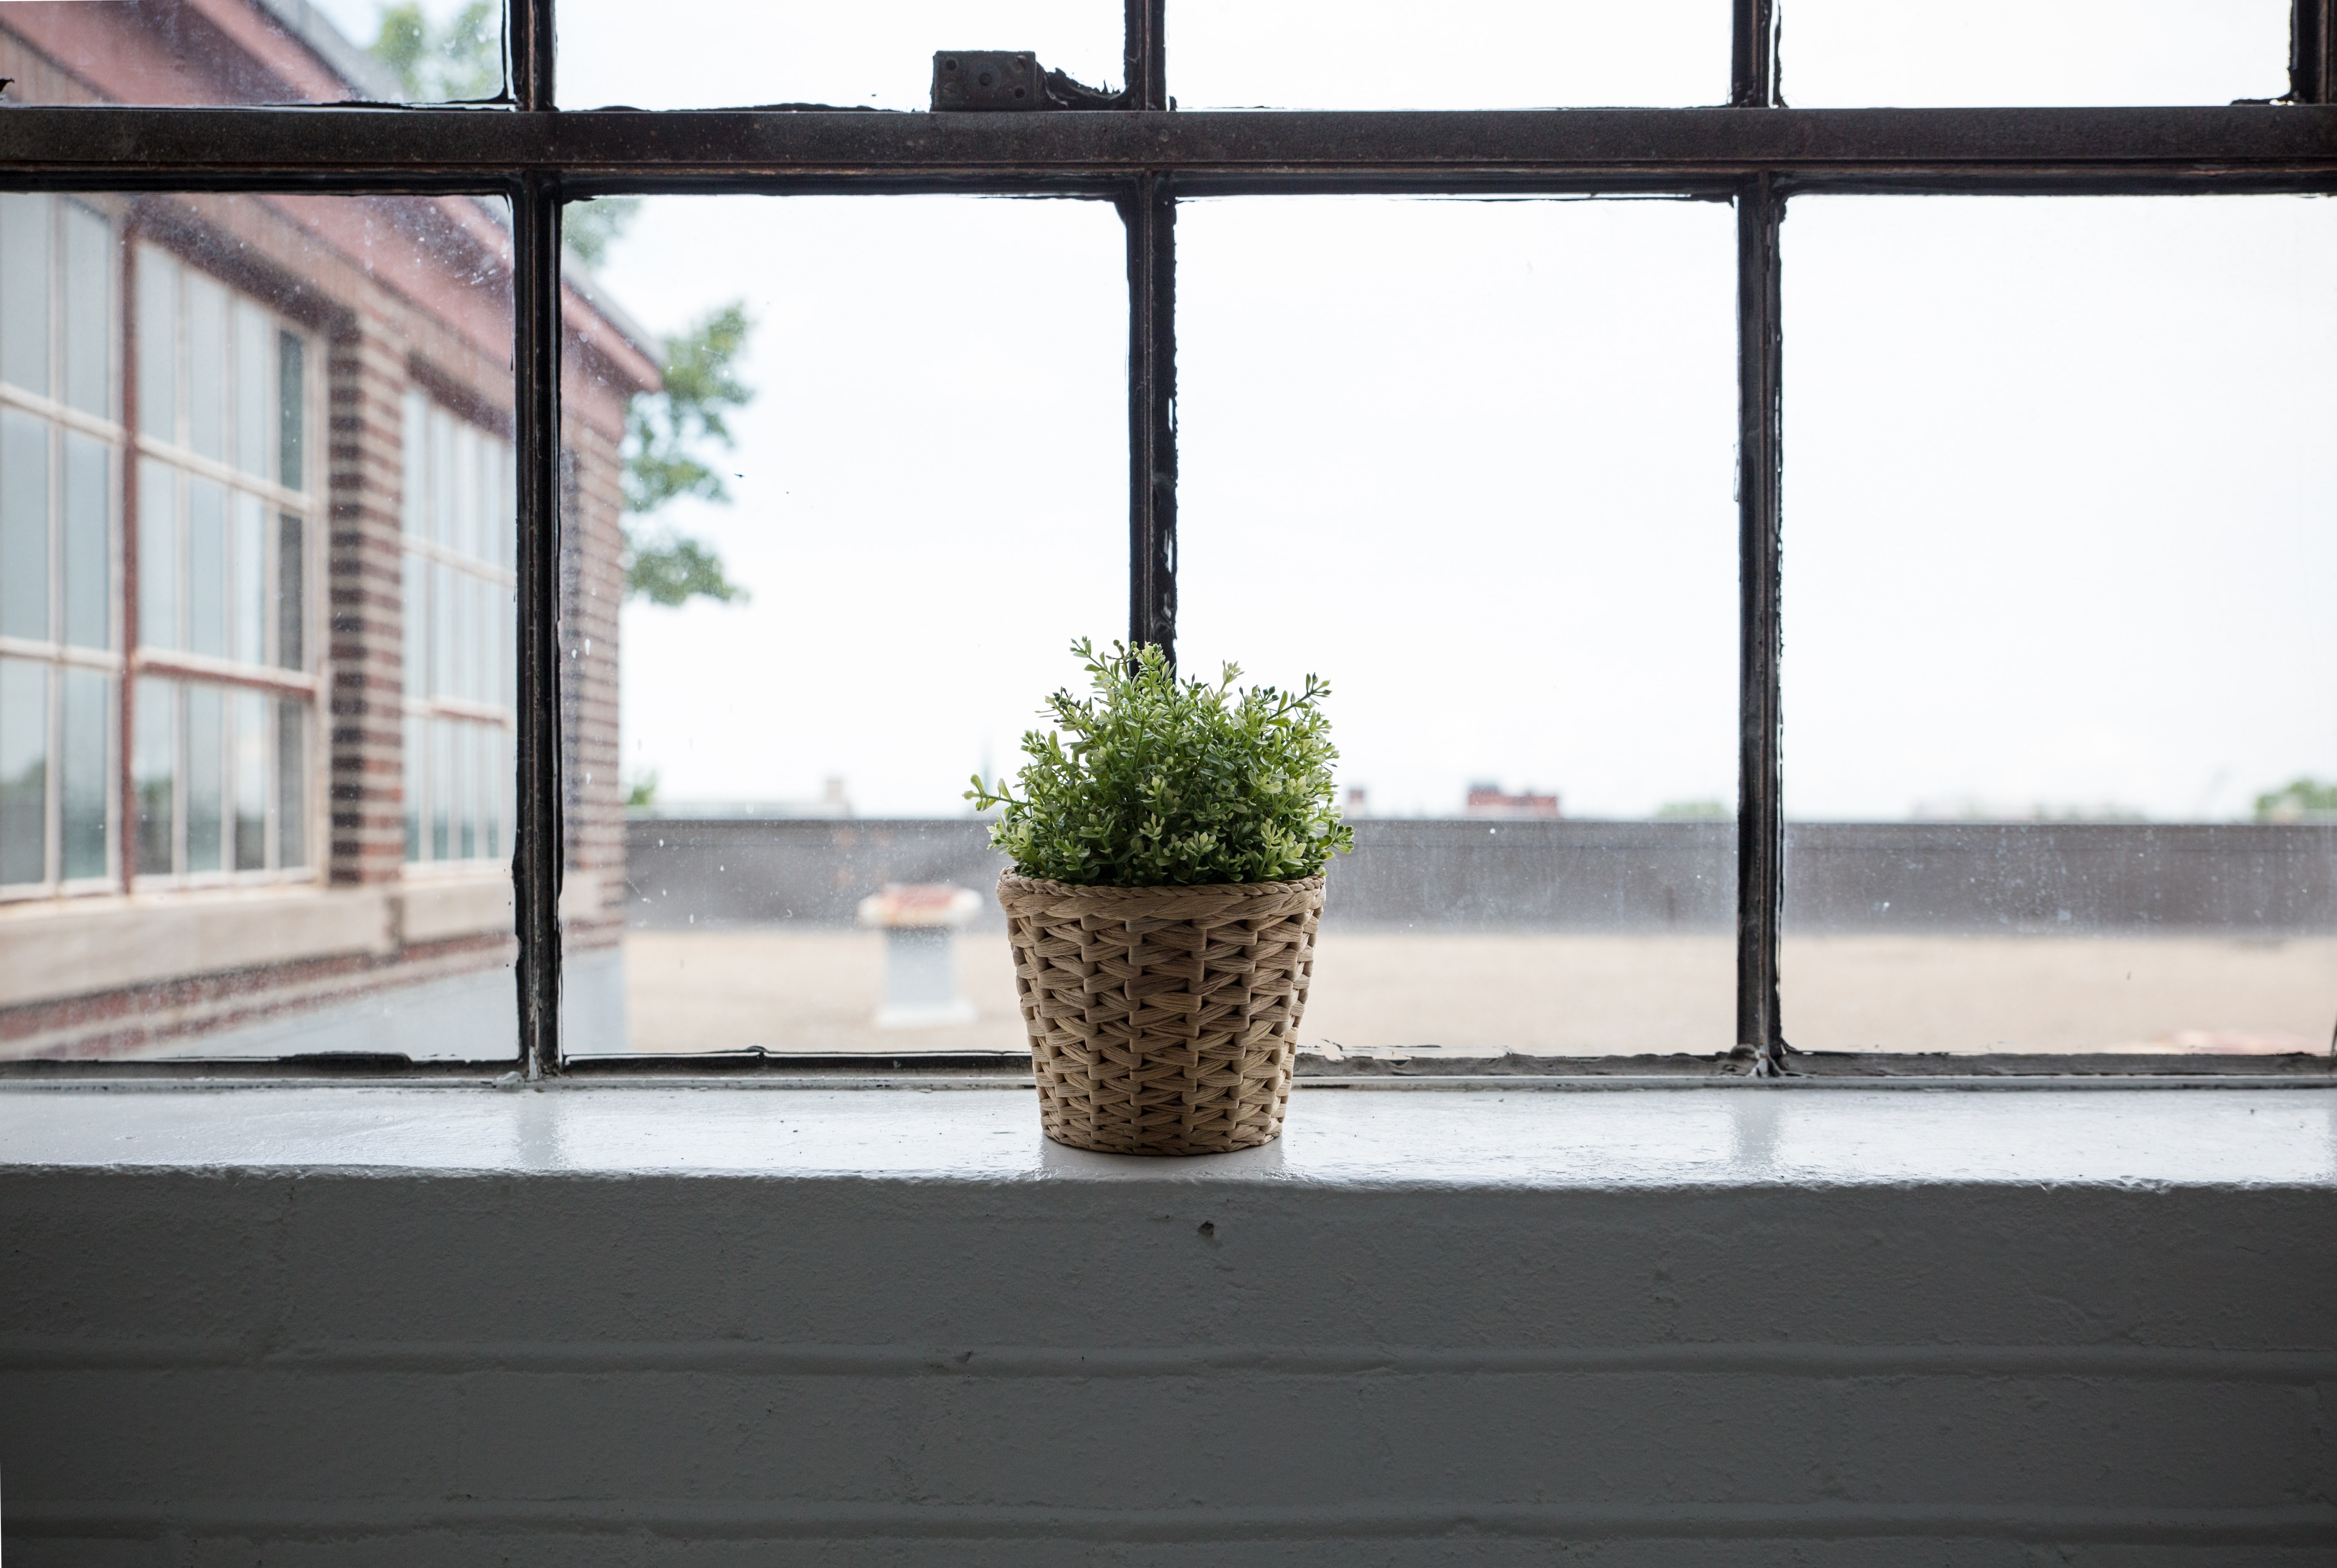 Small green potted plant in wicker basket on window sill with large window during daytime